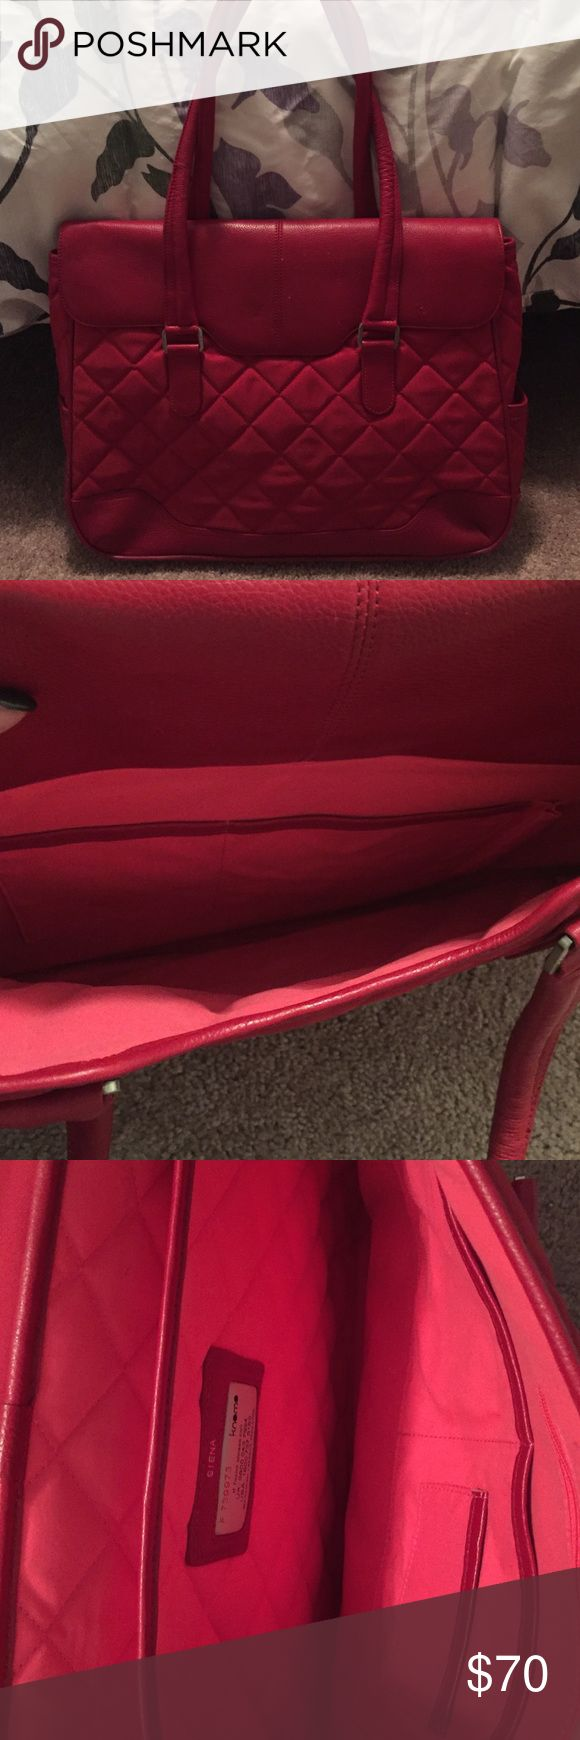 """Knomo women's work bag Great work bag. Padding to hold up to a 15.6"""" laptop. Real leather with quilted fabric. Back magnet pocket. At the top my cat got to it, soon in last picture. 17x14x4 --- straps 14"""" long. knomo Bags Laptop Bags"""